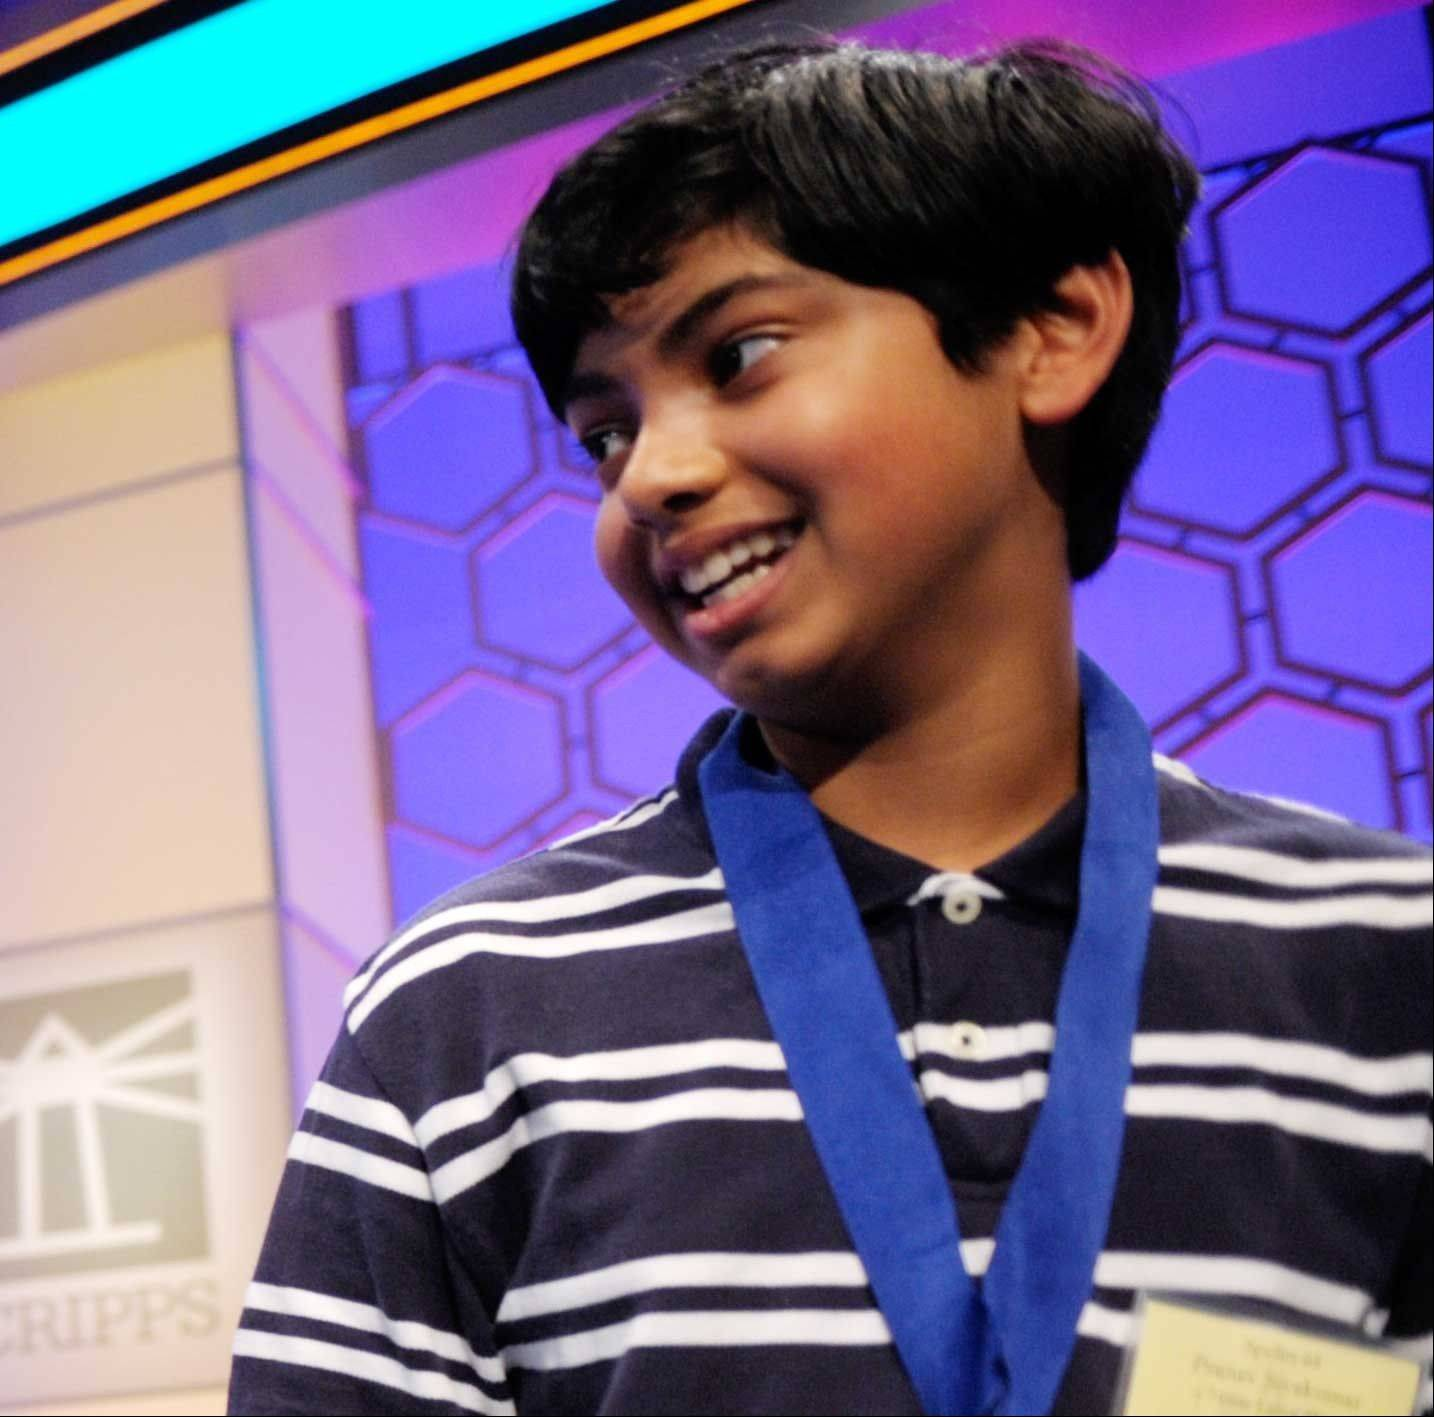 Pranav Sivakumar, 13, of Tower Lakes, placed second in the 86th Scripps National Spelling Bee Thursday night.